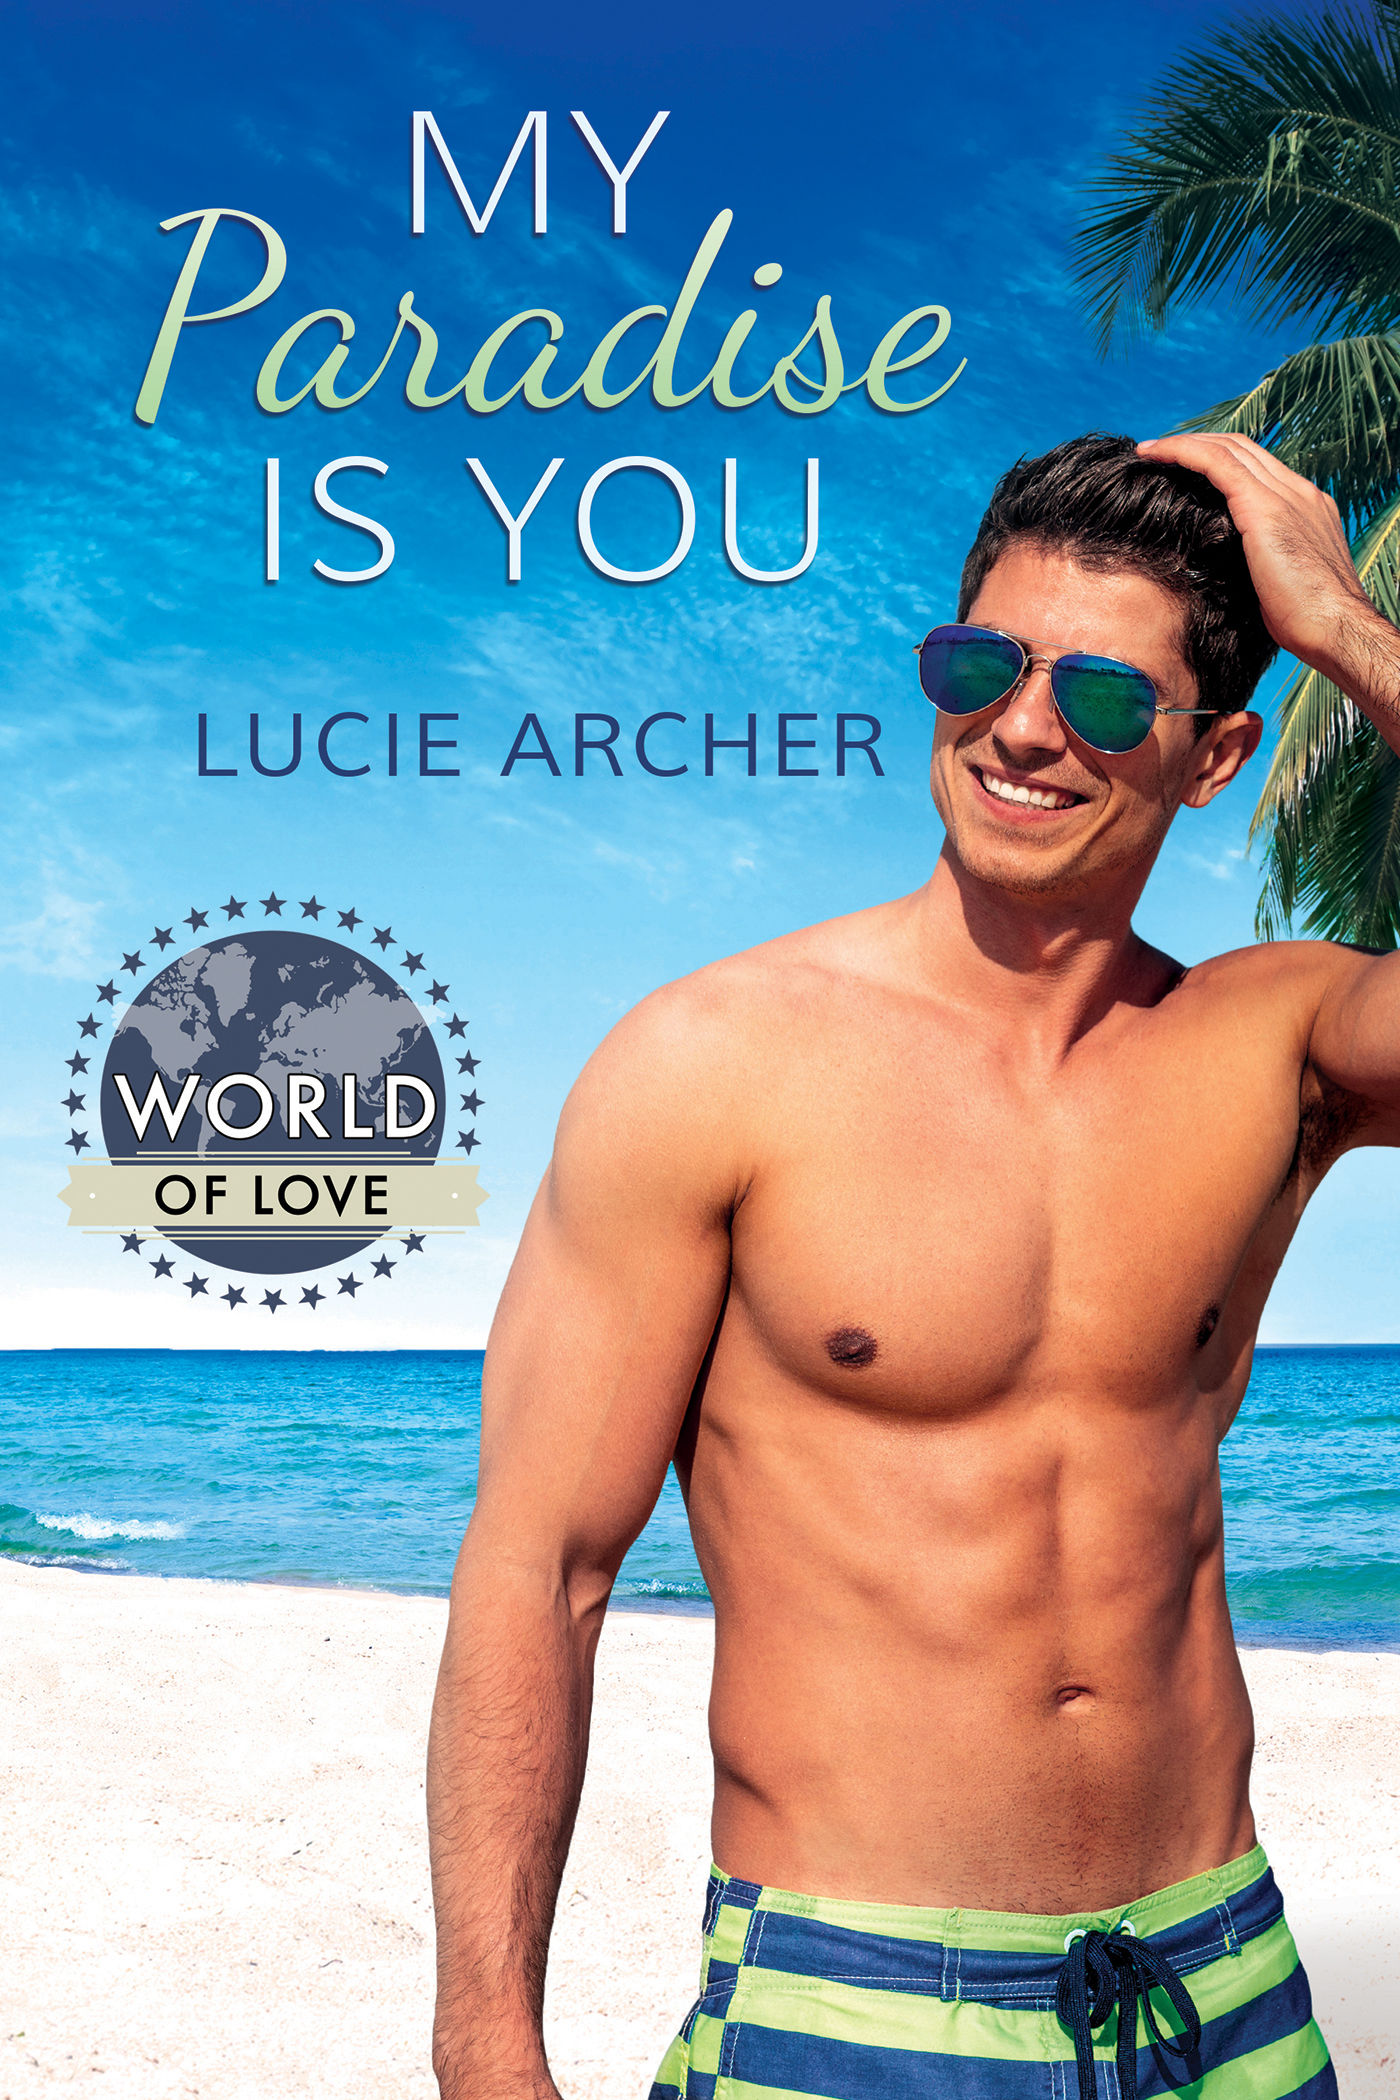 Review: My Paradise is You by Lucie Archer